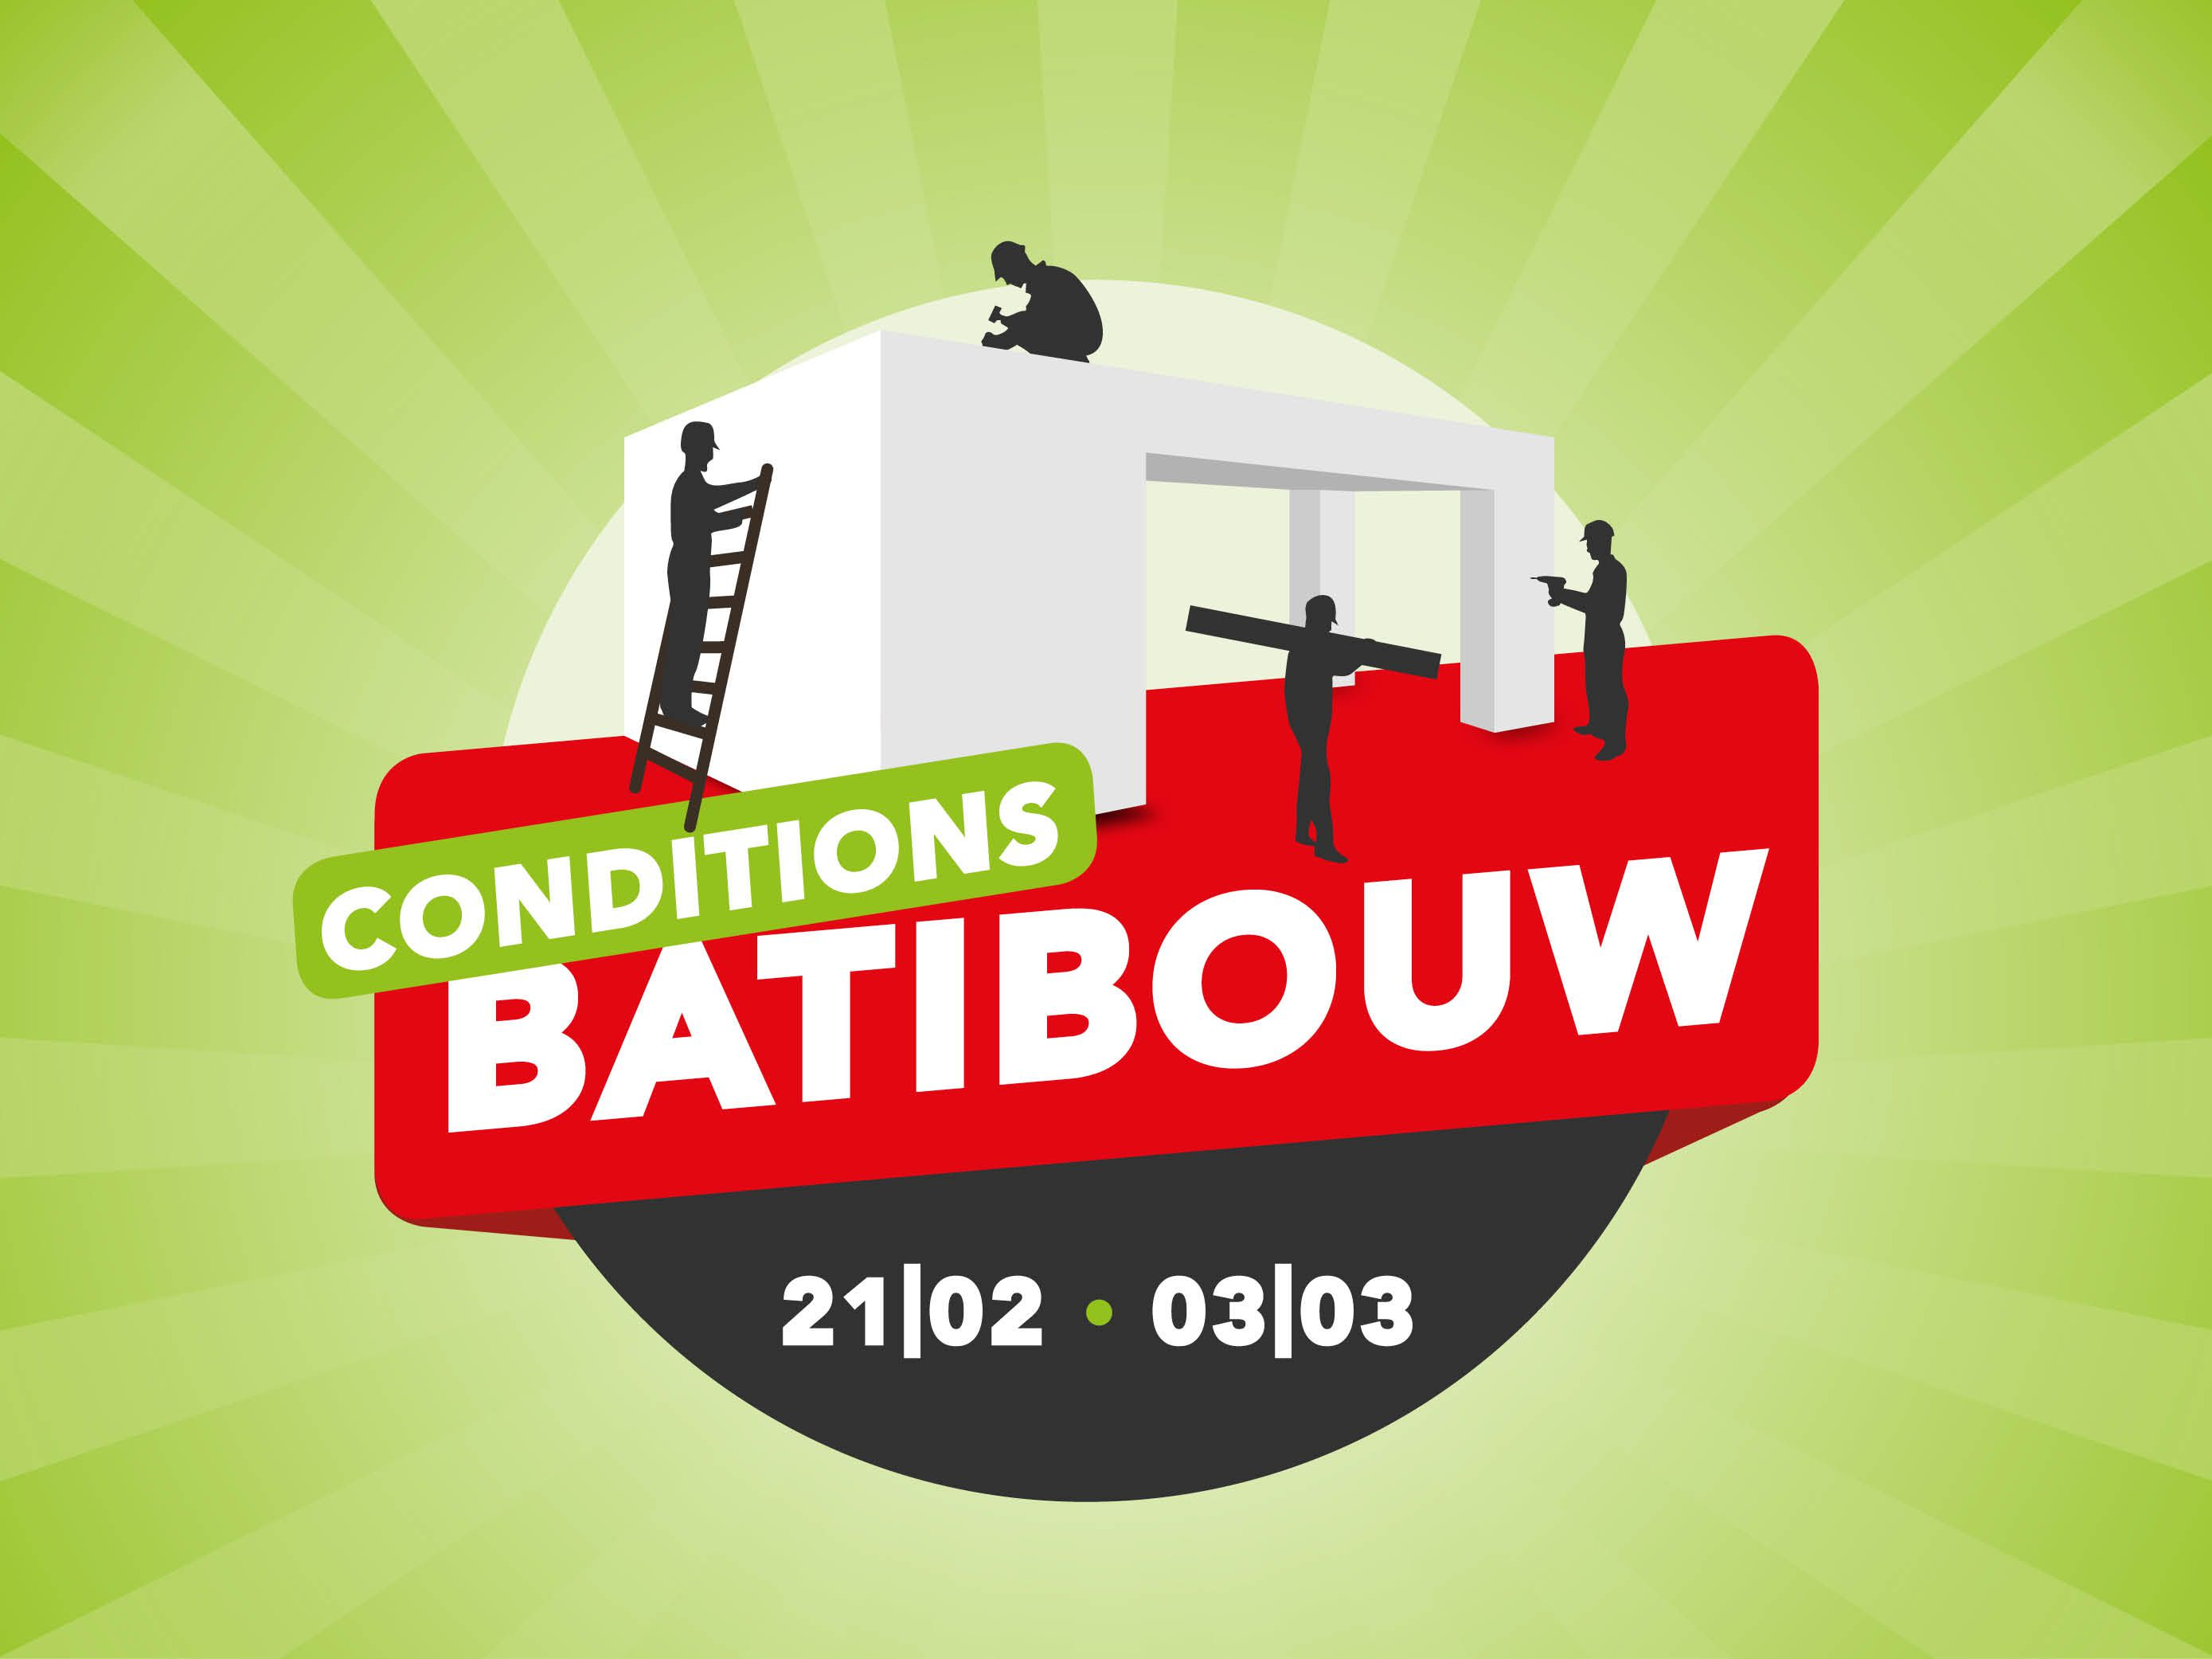 Conditions Batibouw